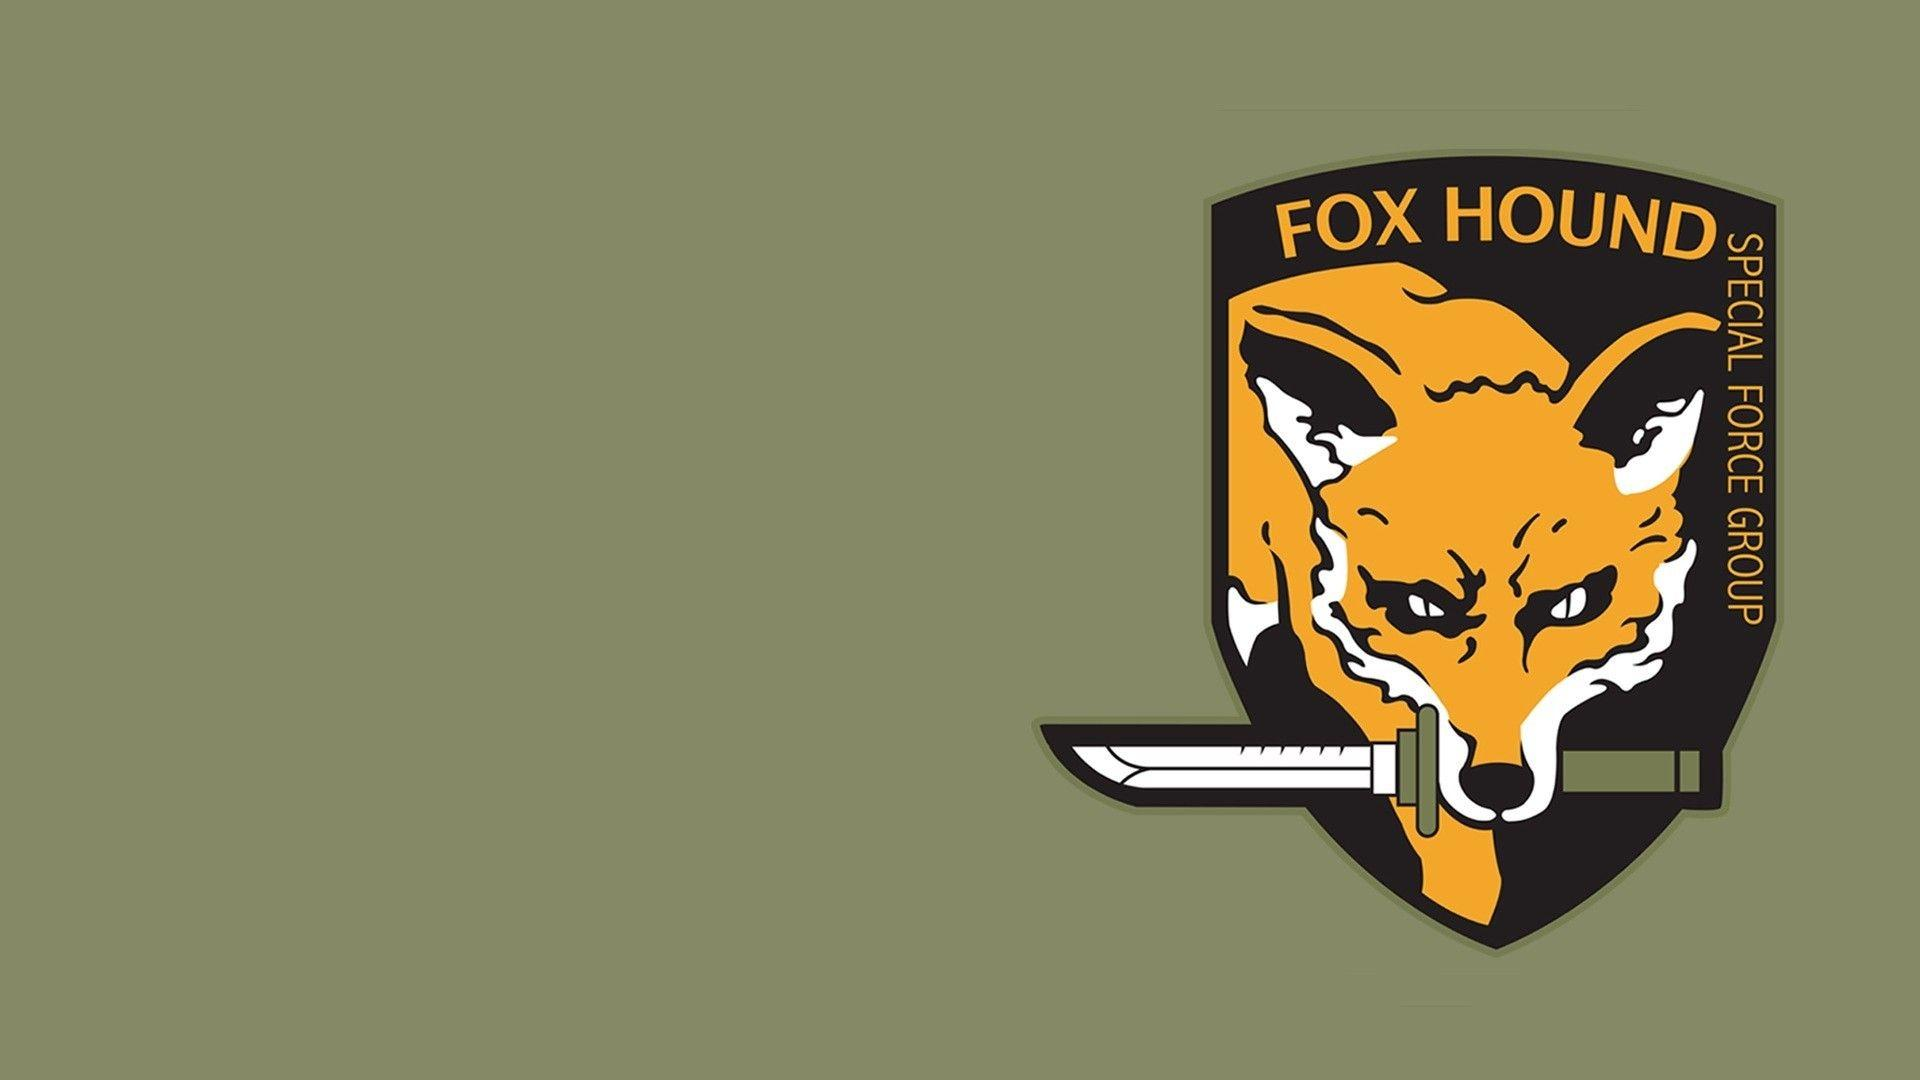 Metal Gear Solid, FOXHOUND Wallpapers HD / Desktop and Mobile